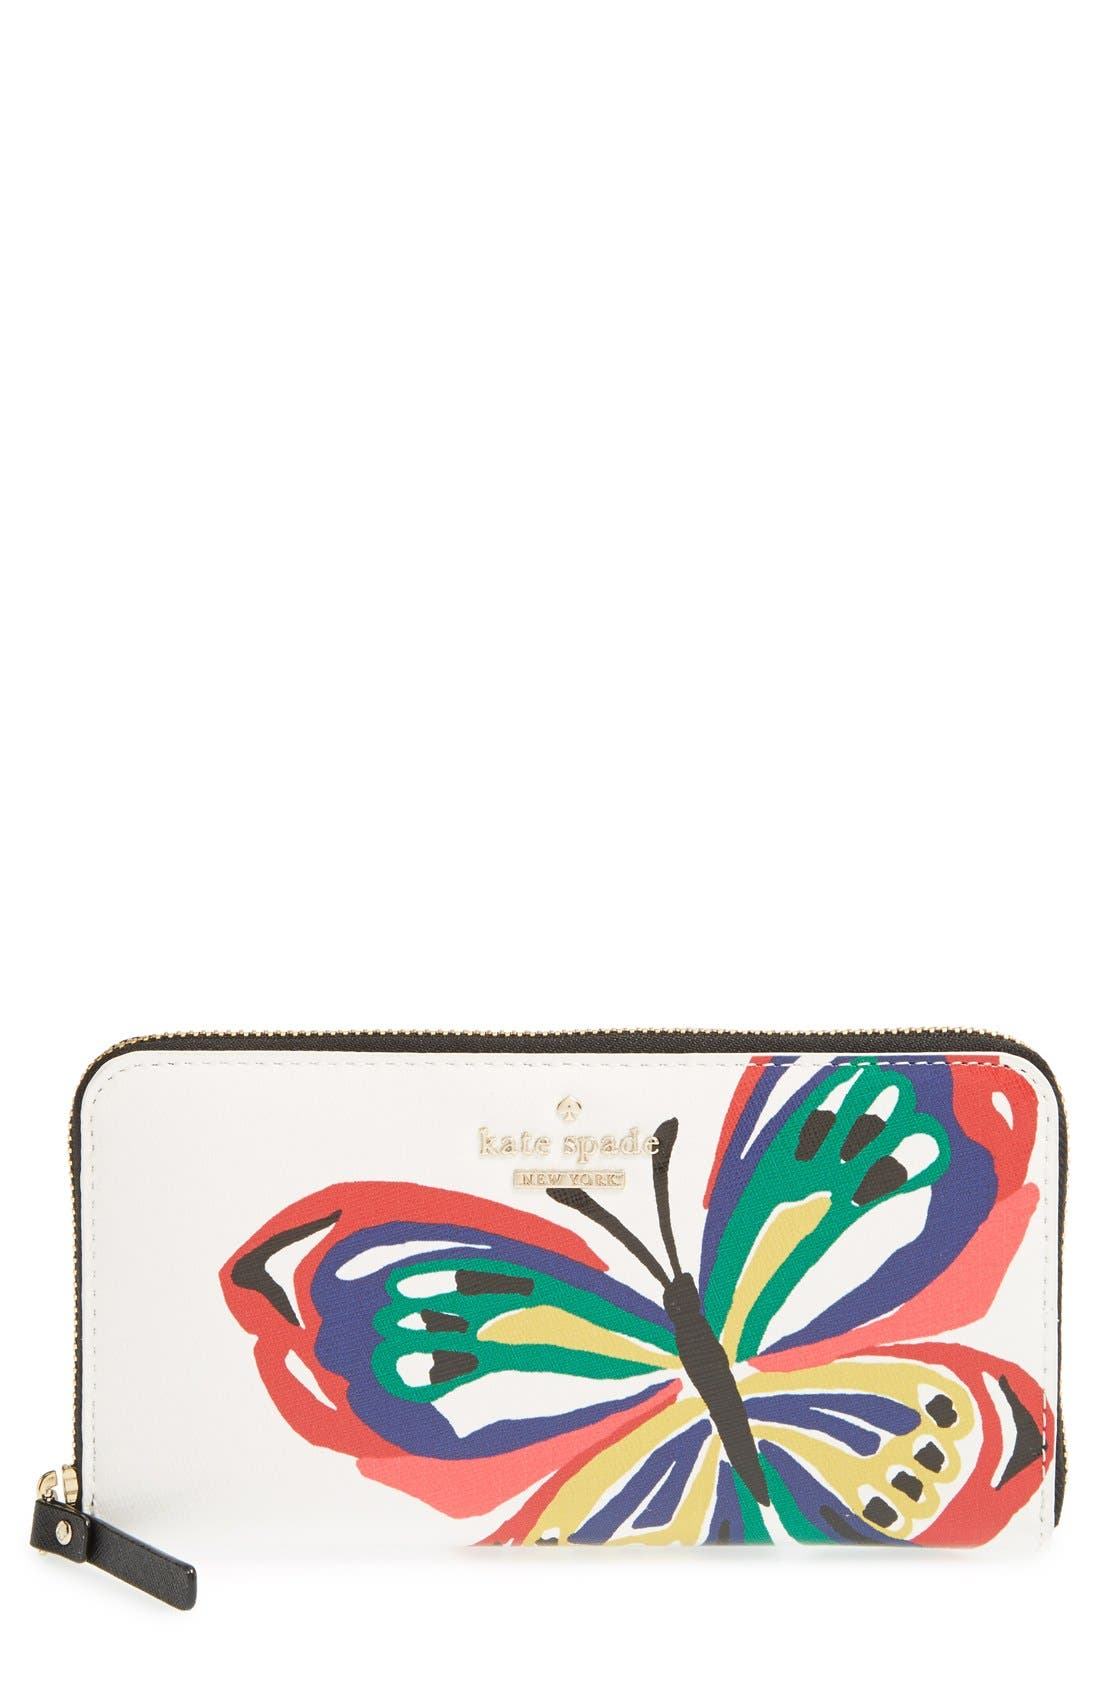 Alternate Image 1 Selected - kate spade new york 'wing it - lacey' zip around wallet